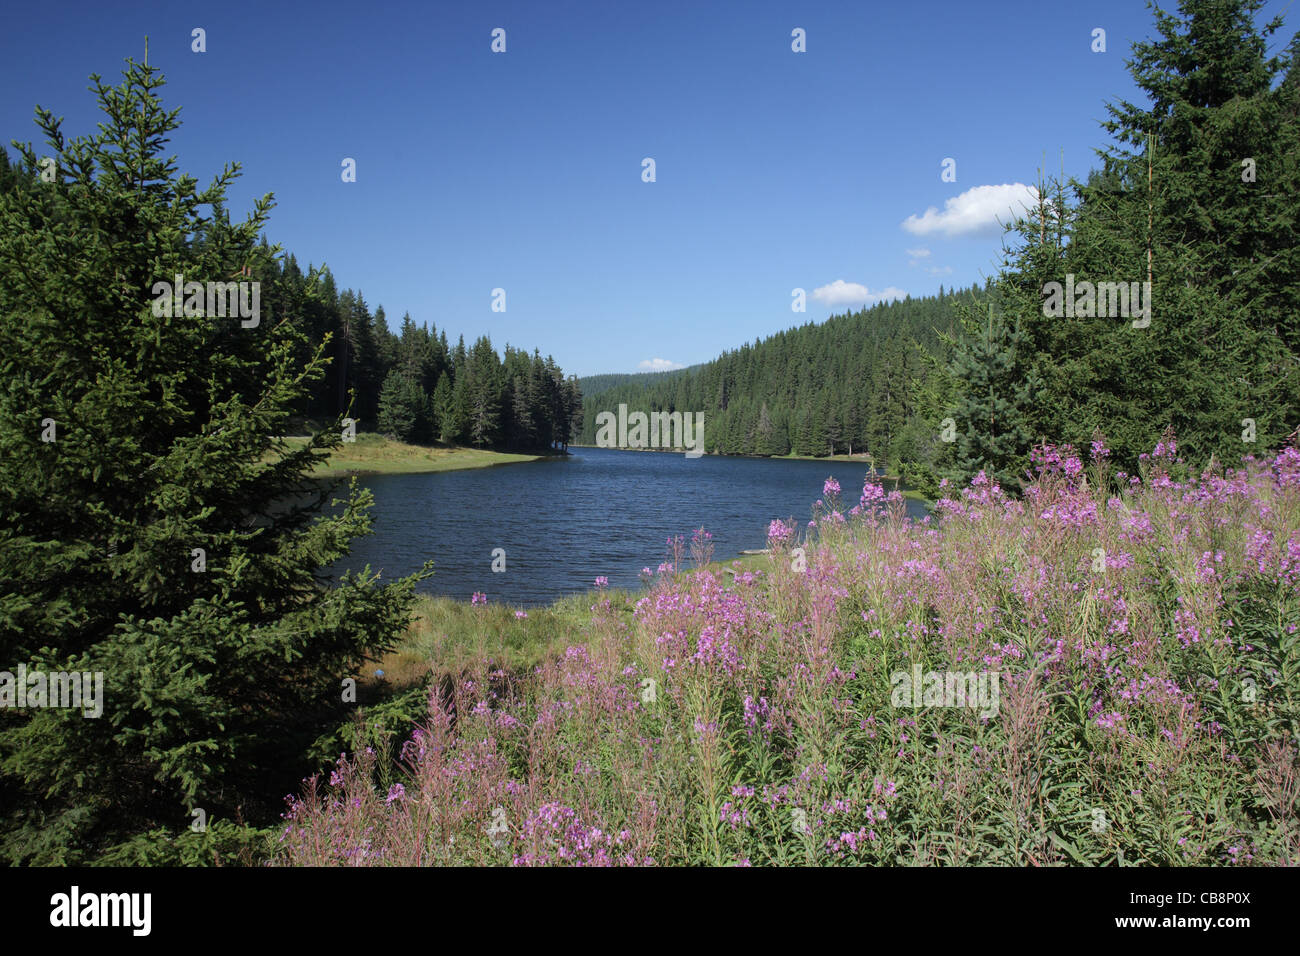 Summer scenery with flowering plants in spruce forest and a dam, Rodopi (Rhodopi) Mountain, Bulgaria - Stock Image